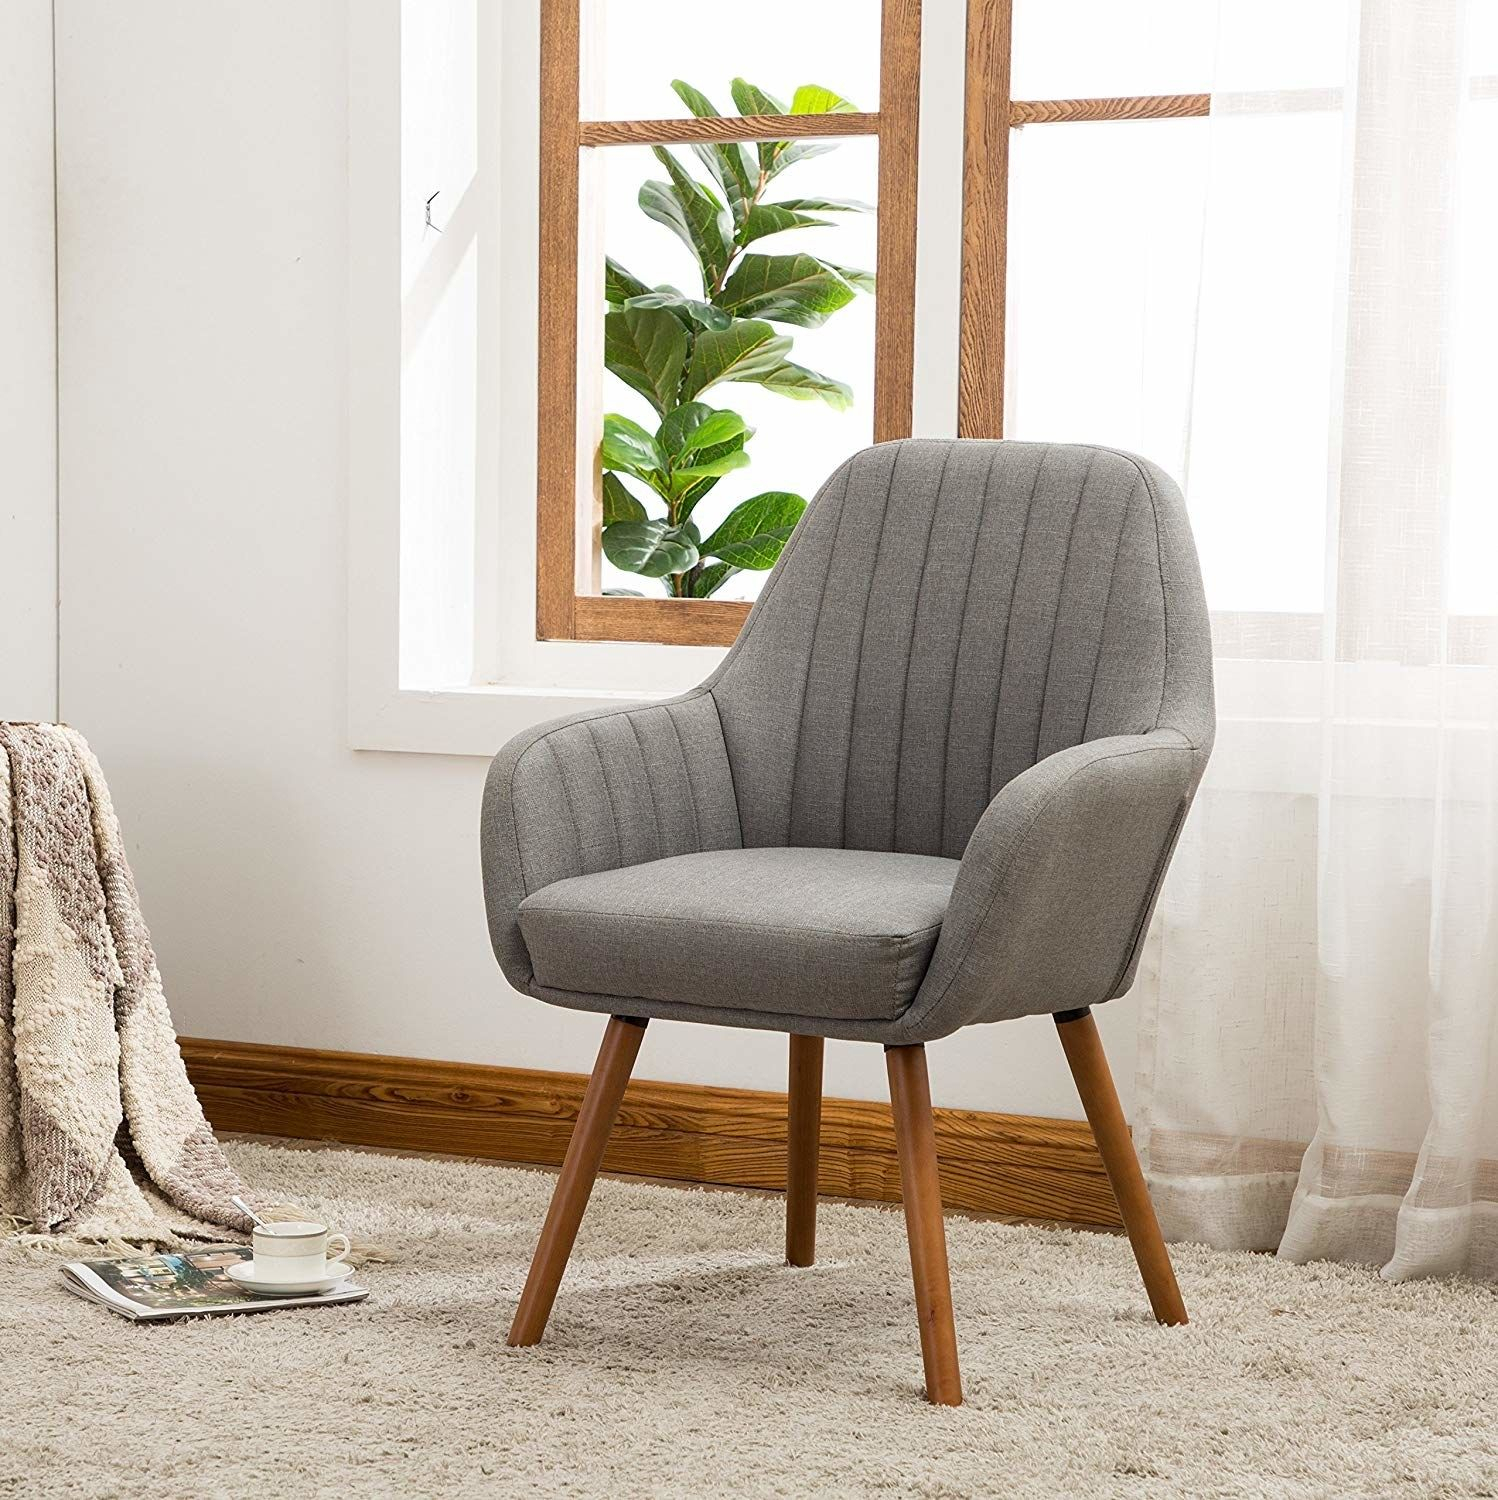 29 Cheap Pieces Of Decor For Anyone Who Spends Most Of Their With Regard To Brister Swivel Side Chairs (View 10 of 15)